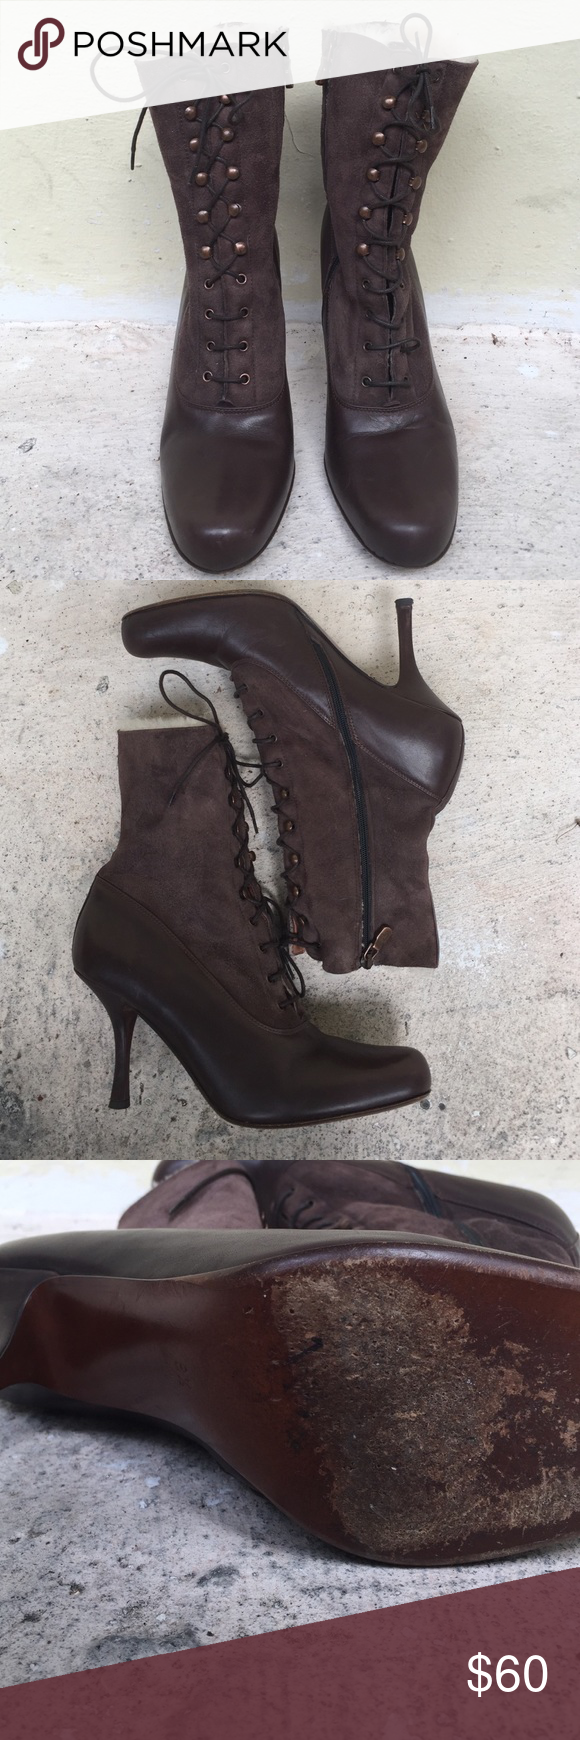 Couture Donald J Pilner Beautiful brown and suede like laceups. Side zipper, 3 inch heel, soles are good n so are heels. Fuzzy inside. Absolutely gorgeous boots Couture Donald J Pliner Shoes Lace Up Boots